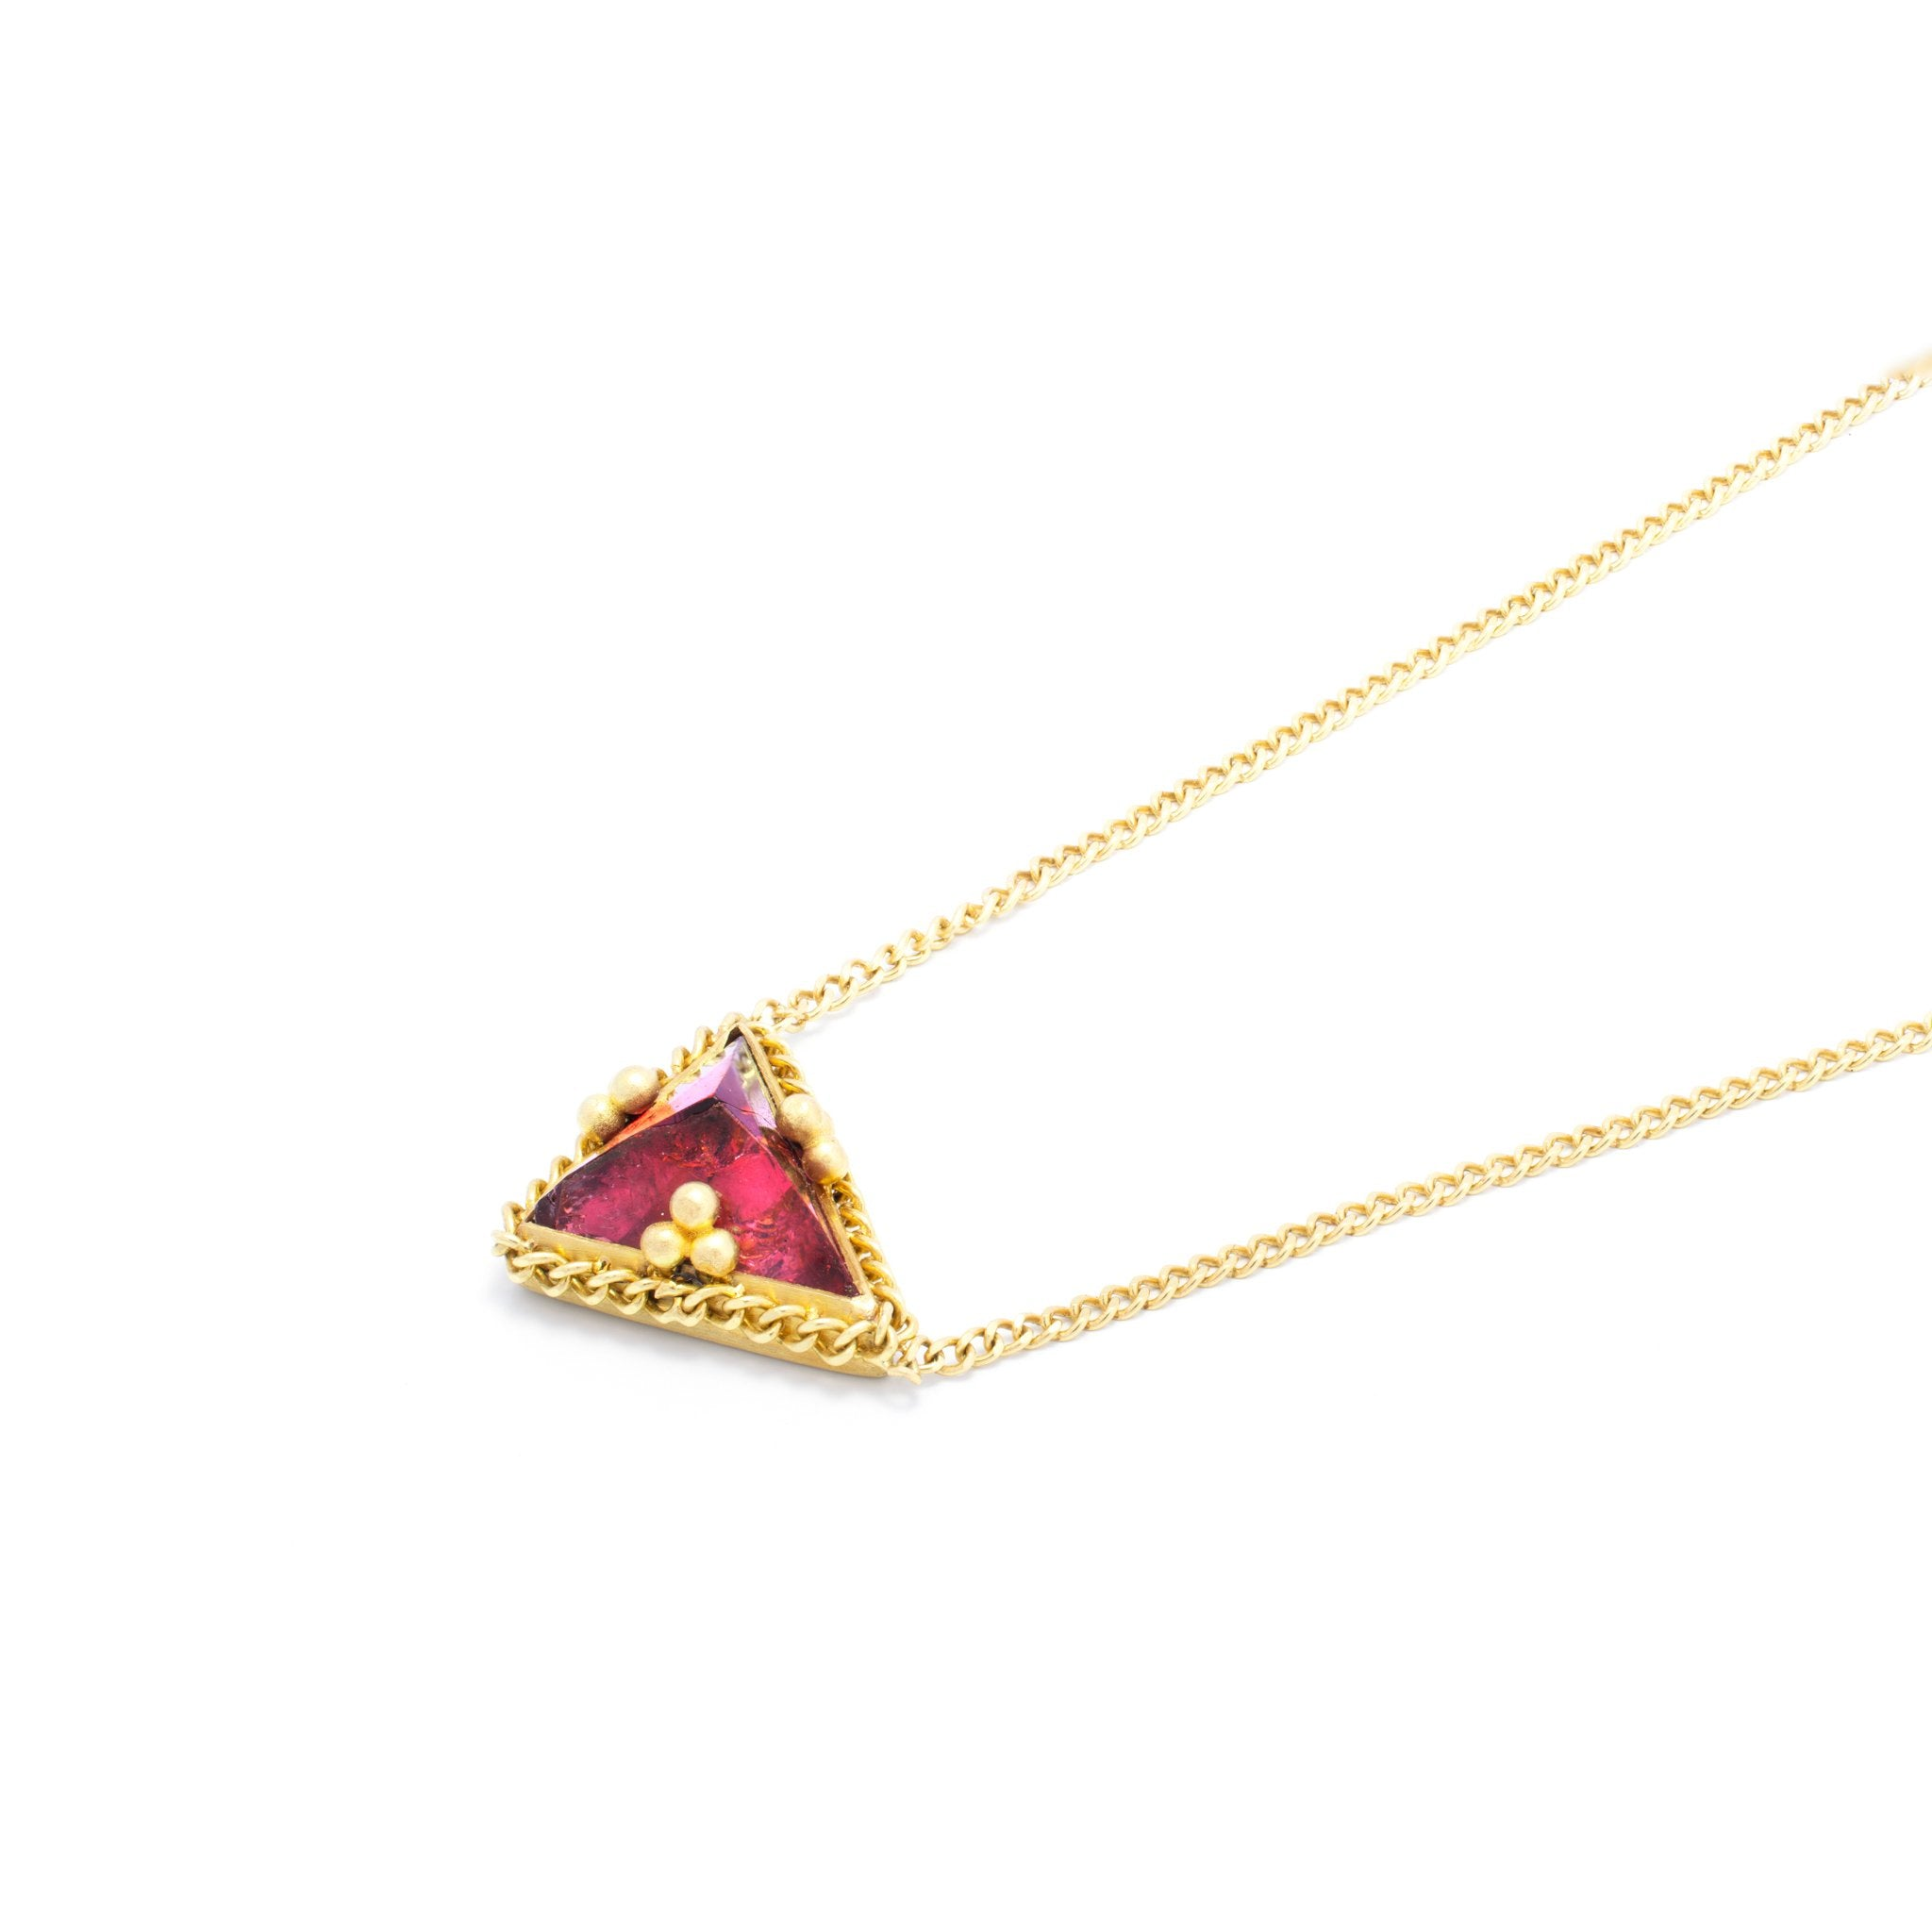 Amali Triangular Tourmaline Necklace